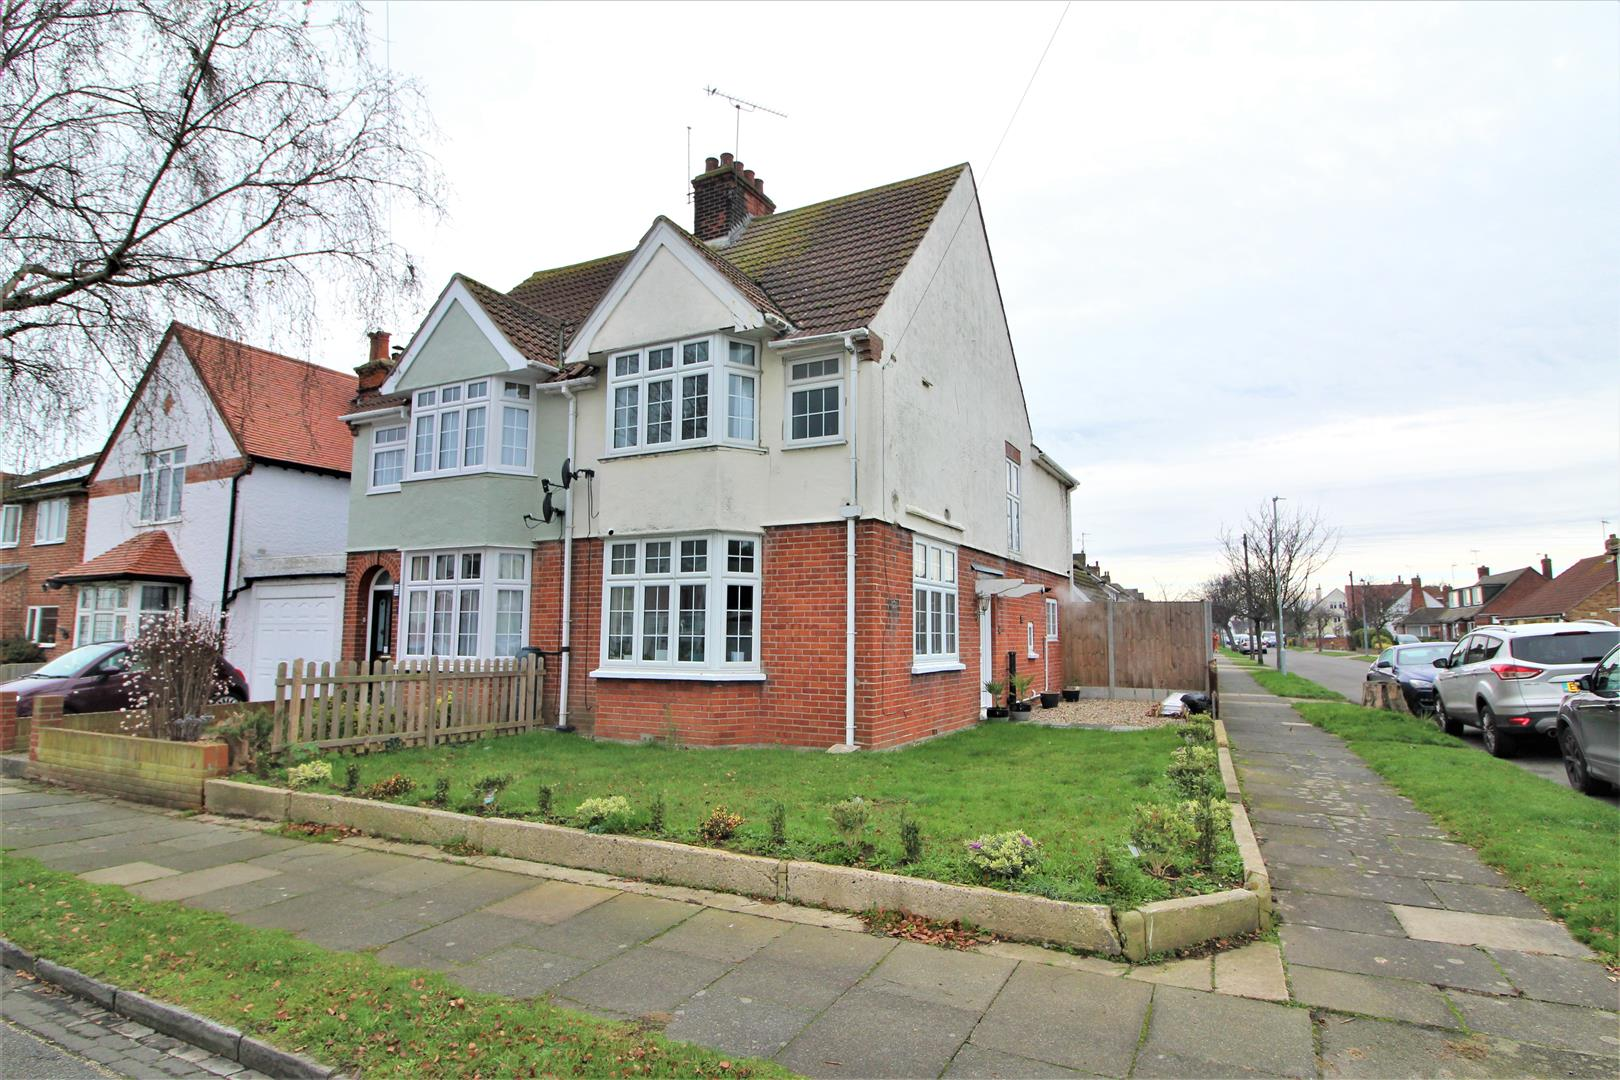 Greenway, Frinton-On-Sea, Essex, CO13 9AL